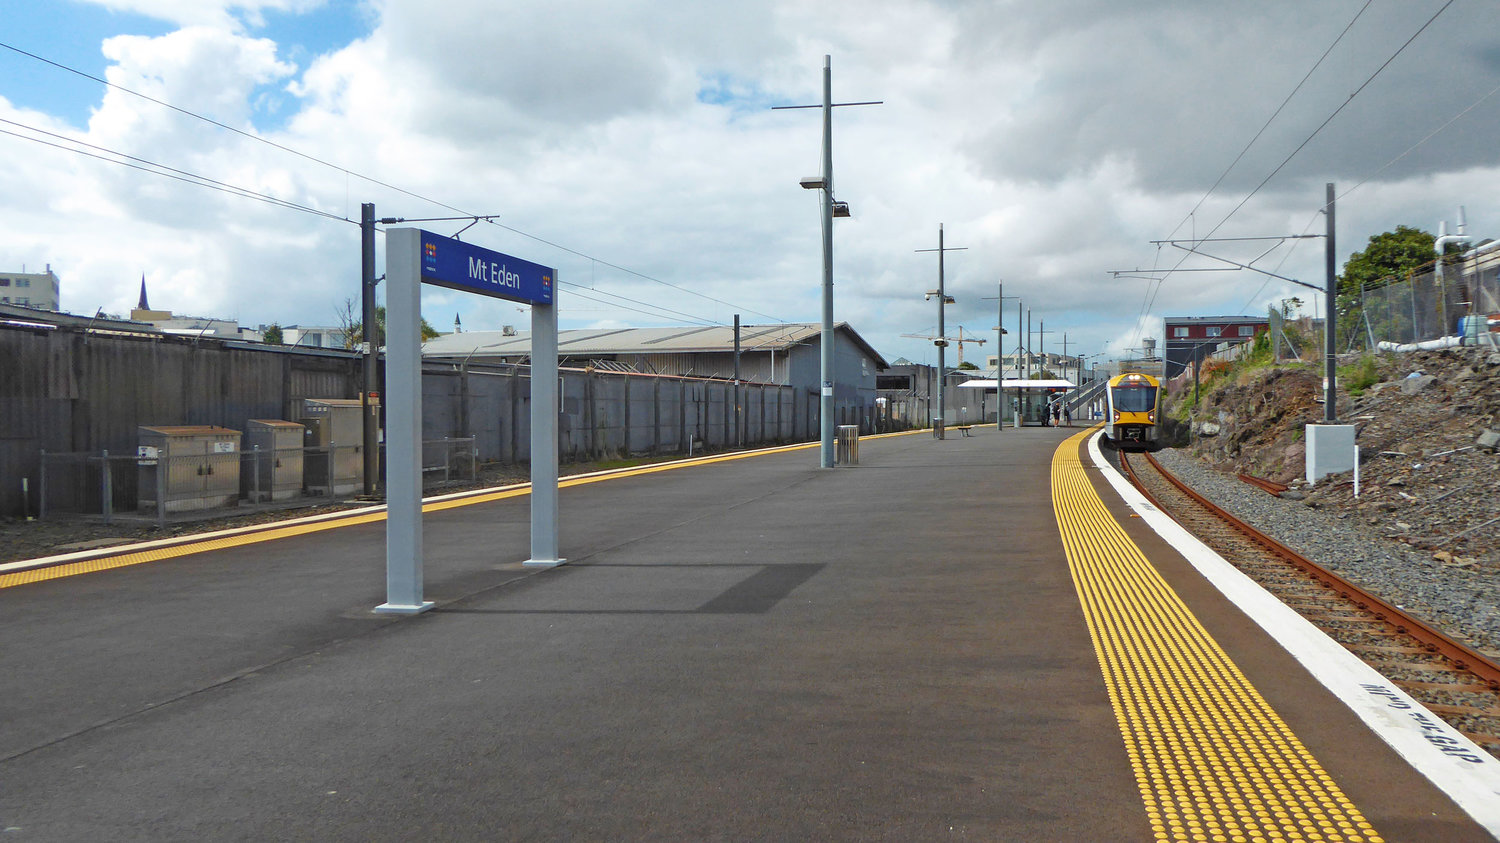 WALKWAY: The walkway to Mount Eden station platform